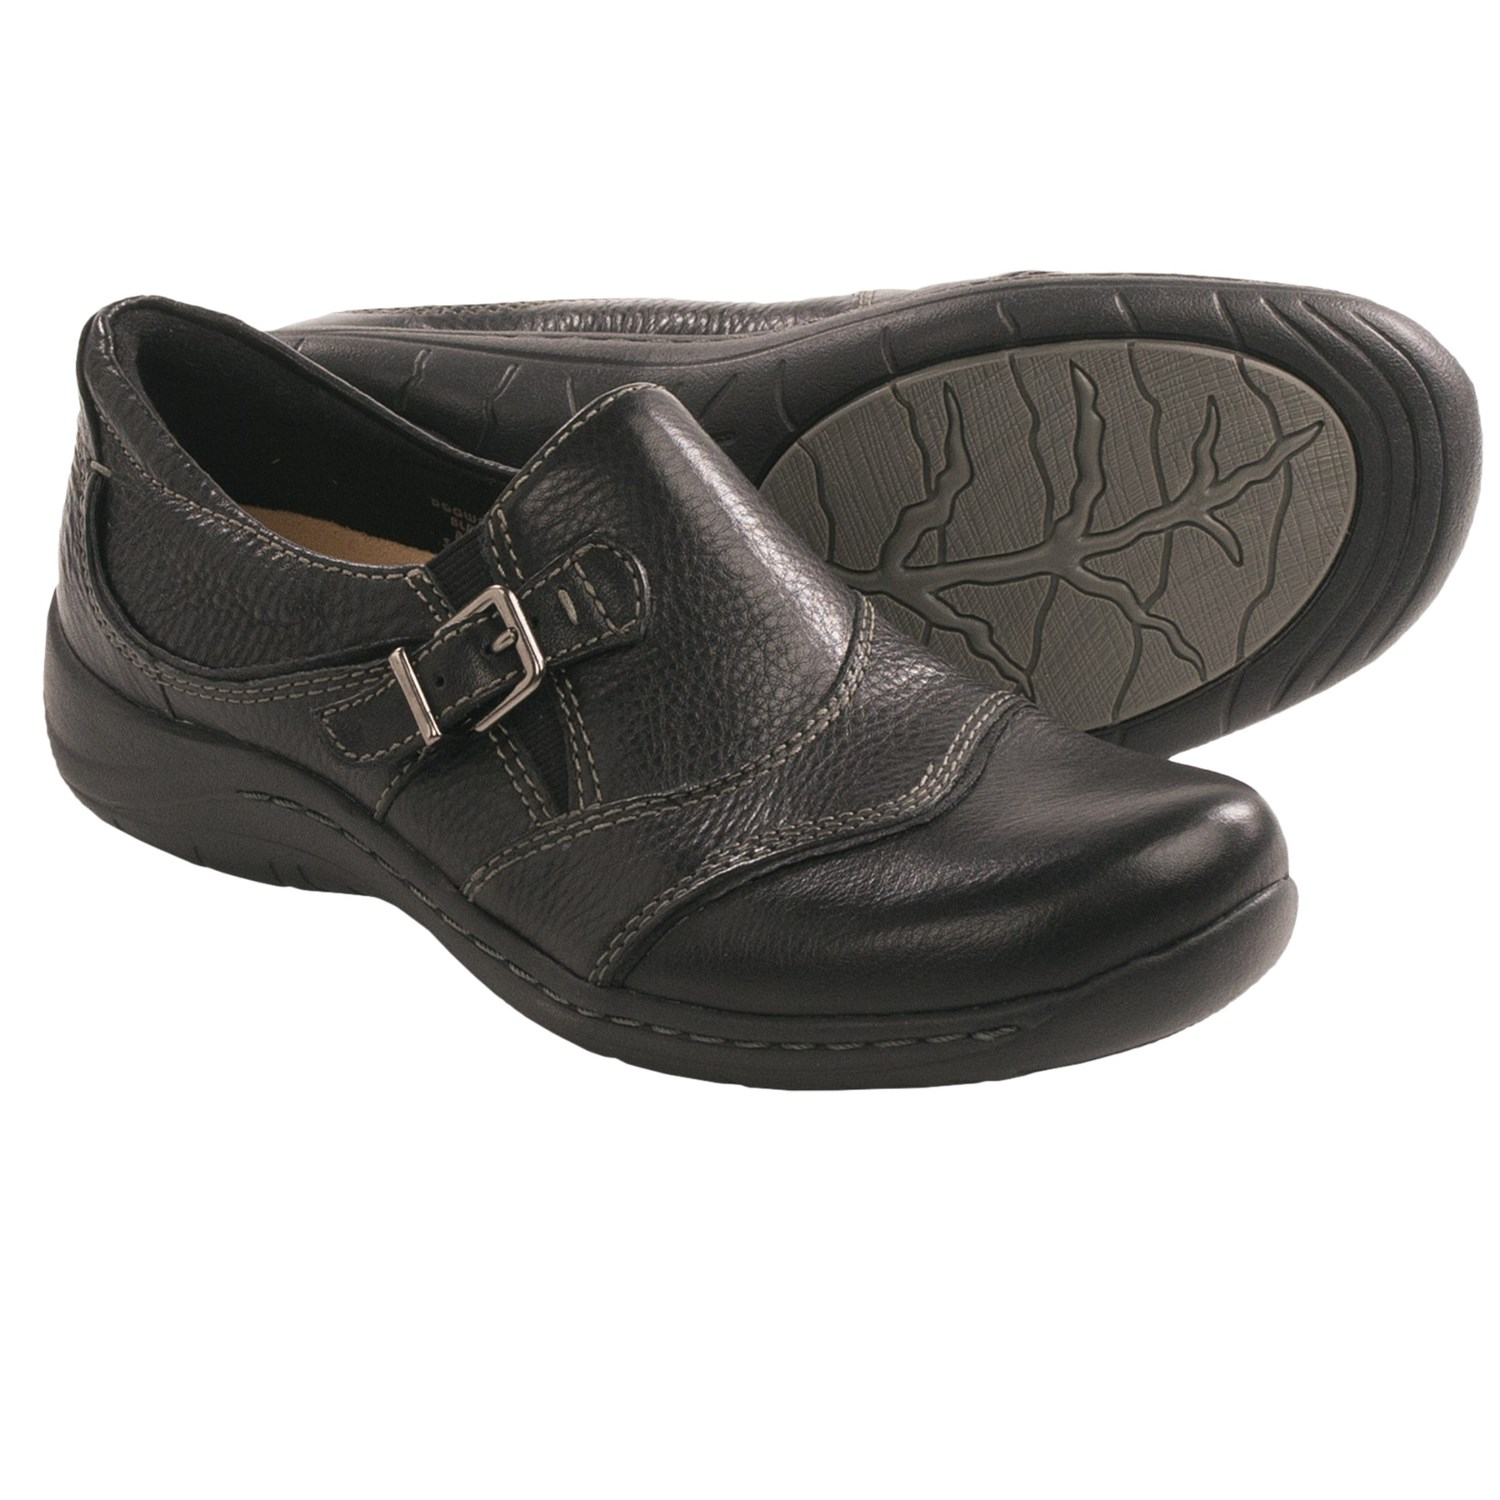 Columbia Shoes Dogwood For Women